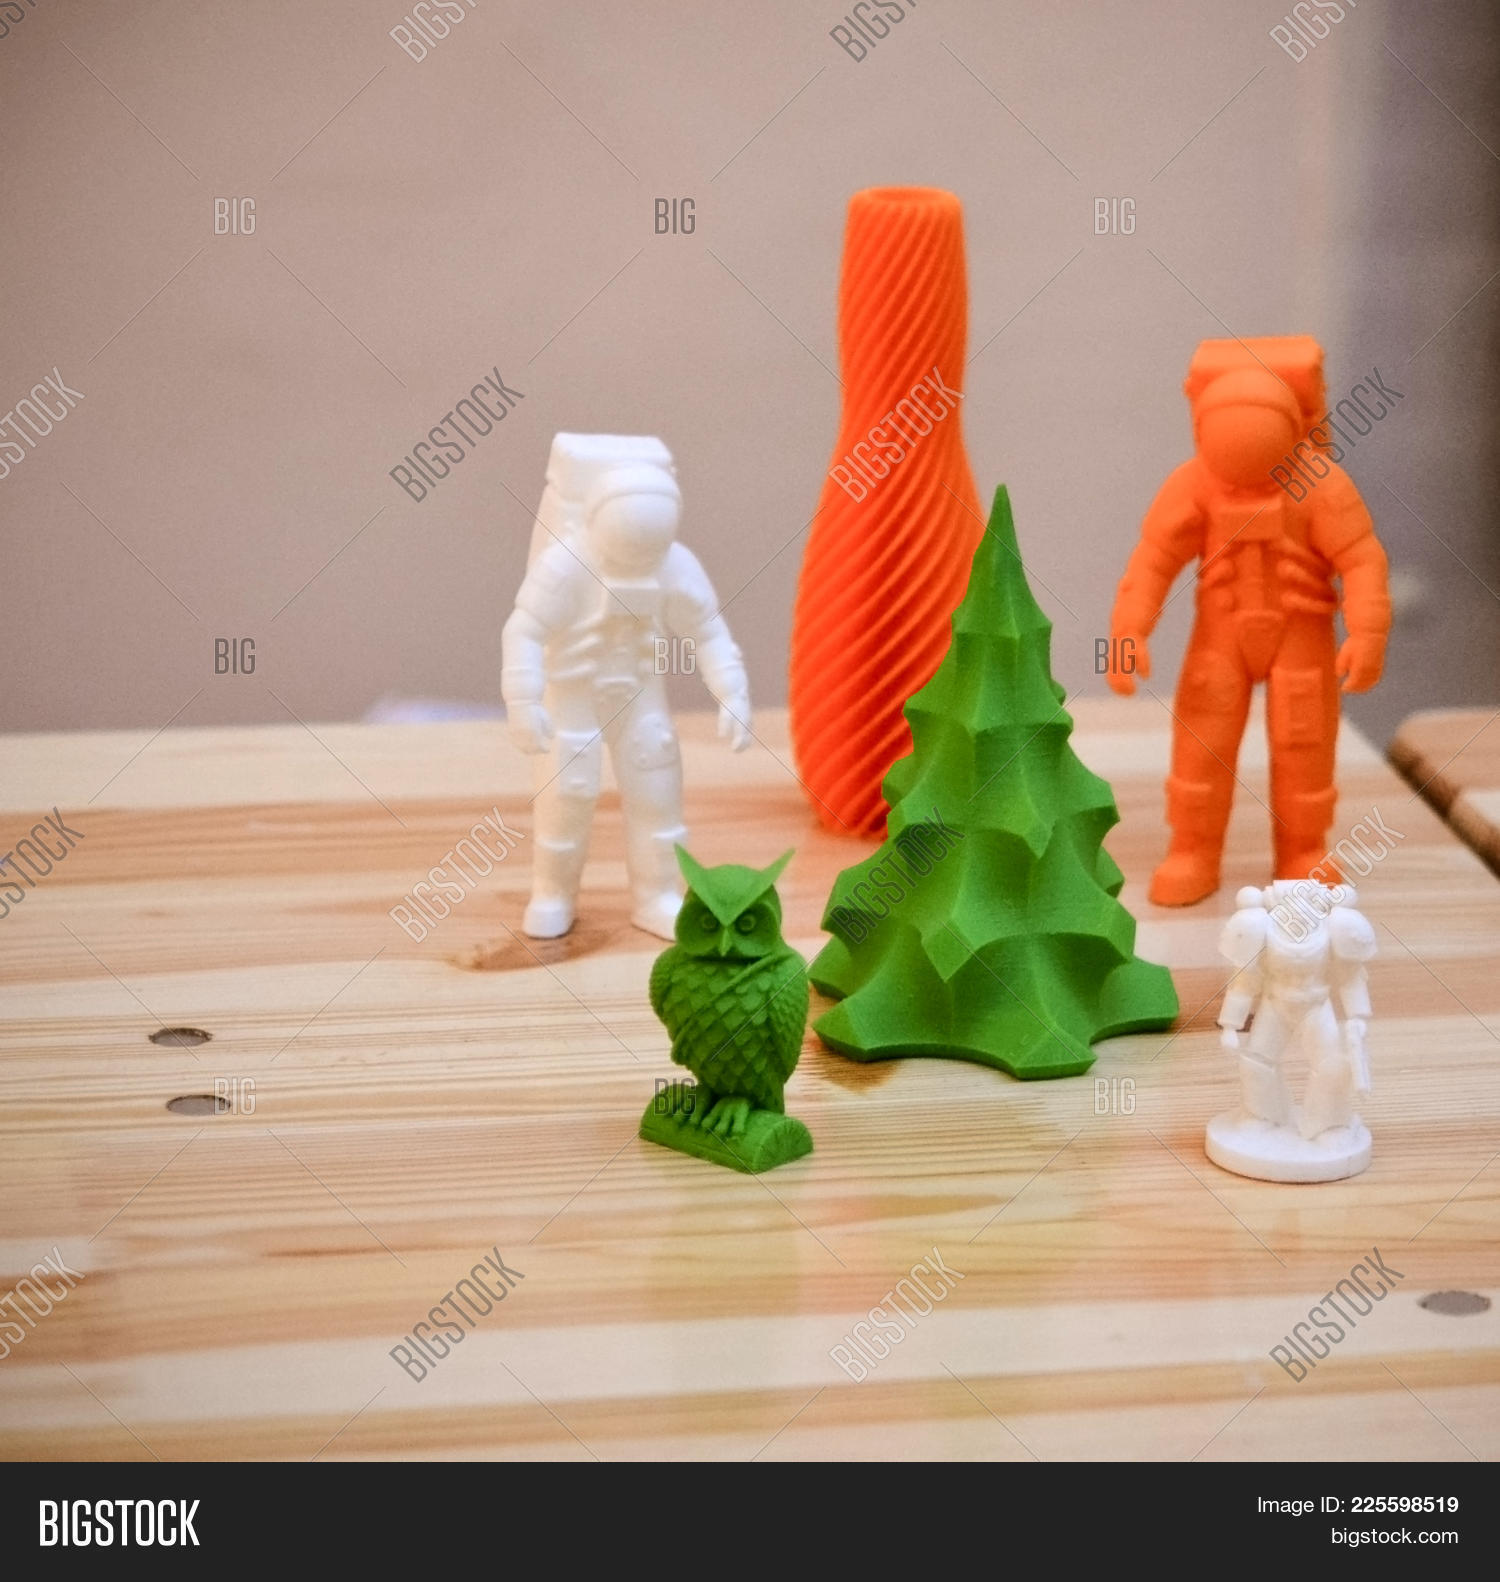 performance of 3d printed models as After so much advice, we recommend you to take a look at the categories best 3d printer under $200, best 3d printer under $300, best 3d printer under $500, and — of course — best 3d printer for beginners surely, you'll find the best 3d printer for you in these categories.